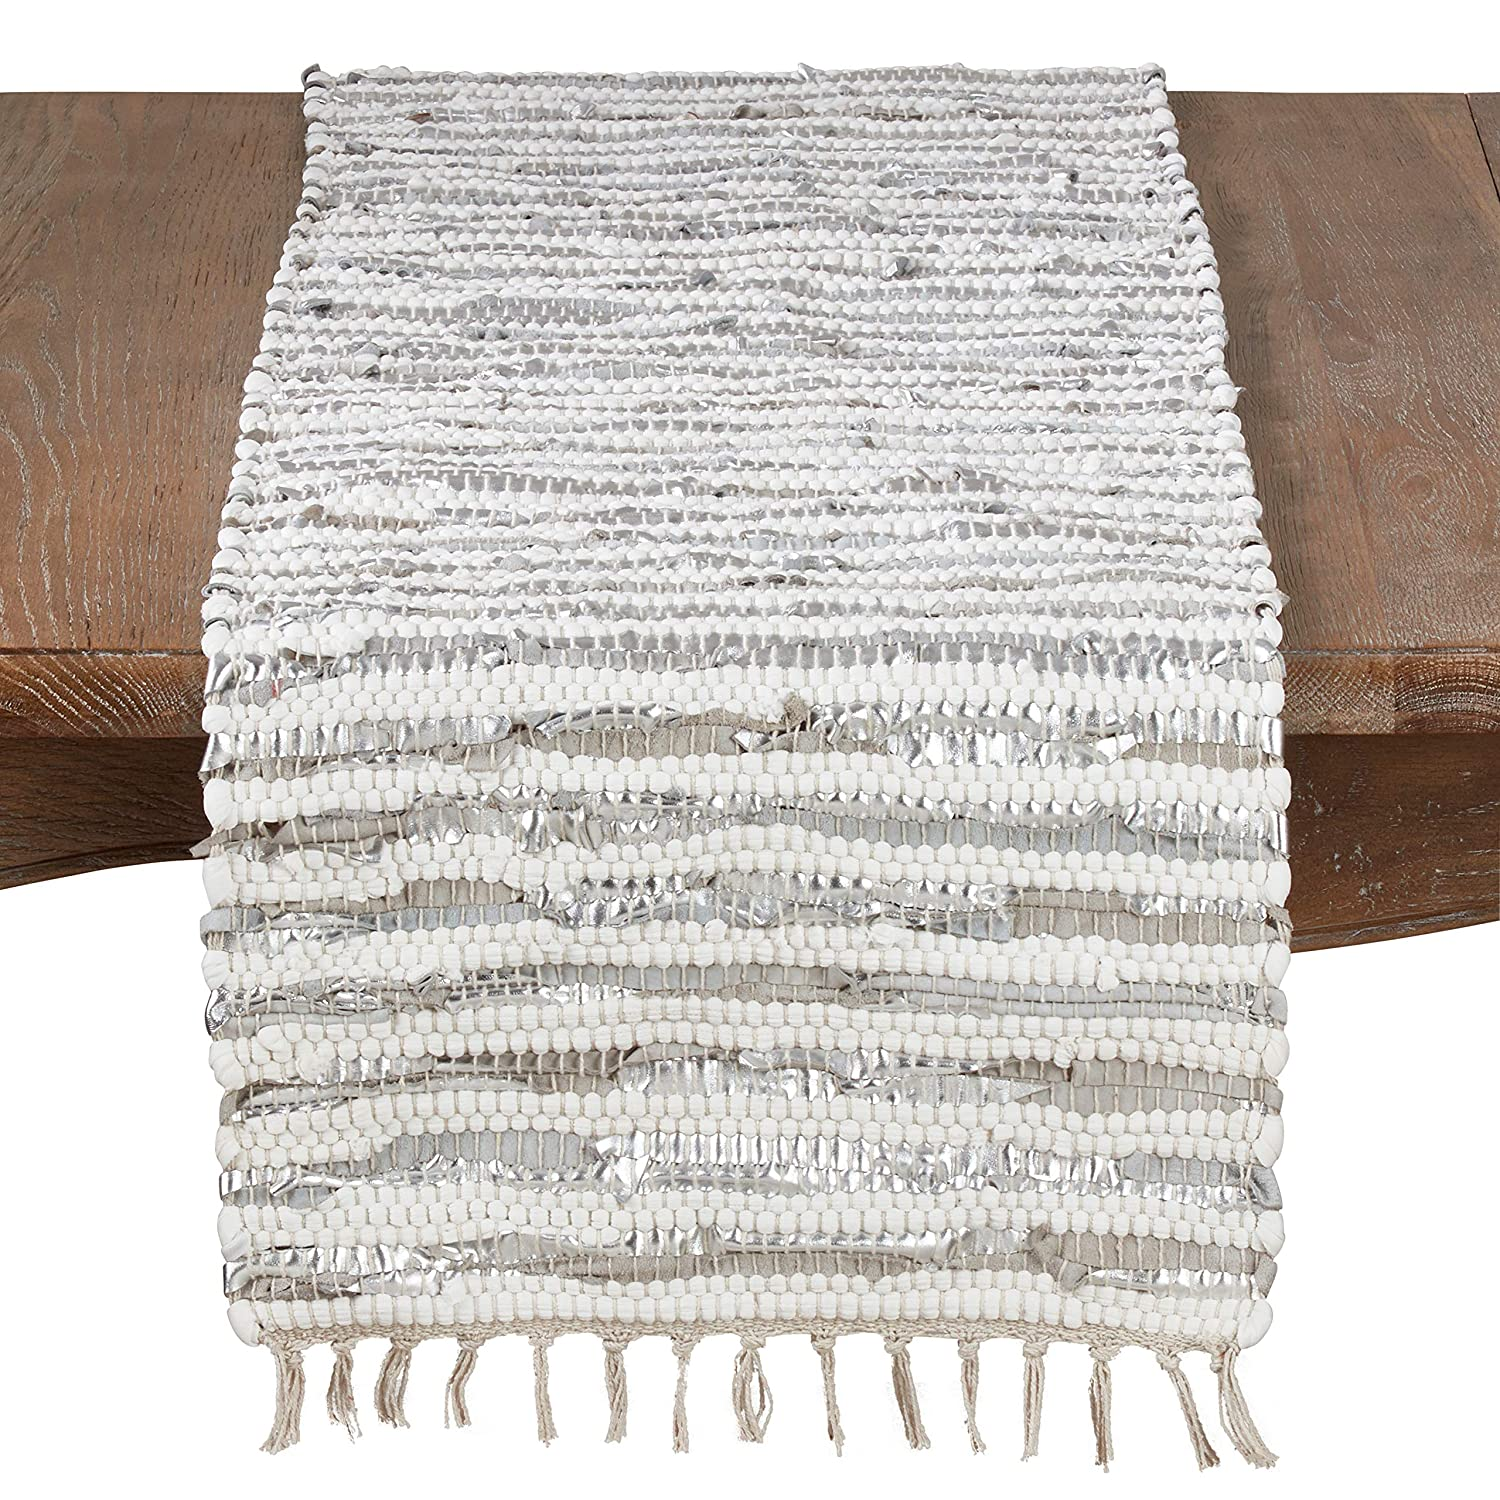 16 x 72 SARO LIFESTYLE 2129.S1672B Les F/êtes Collection Foil Strip Chindi Table Runner With Cotton And Leather Blend Silver